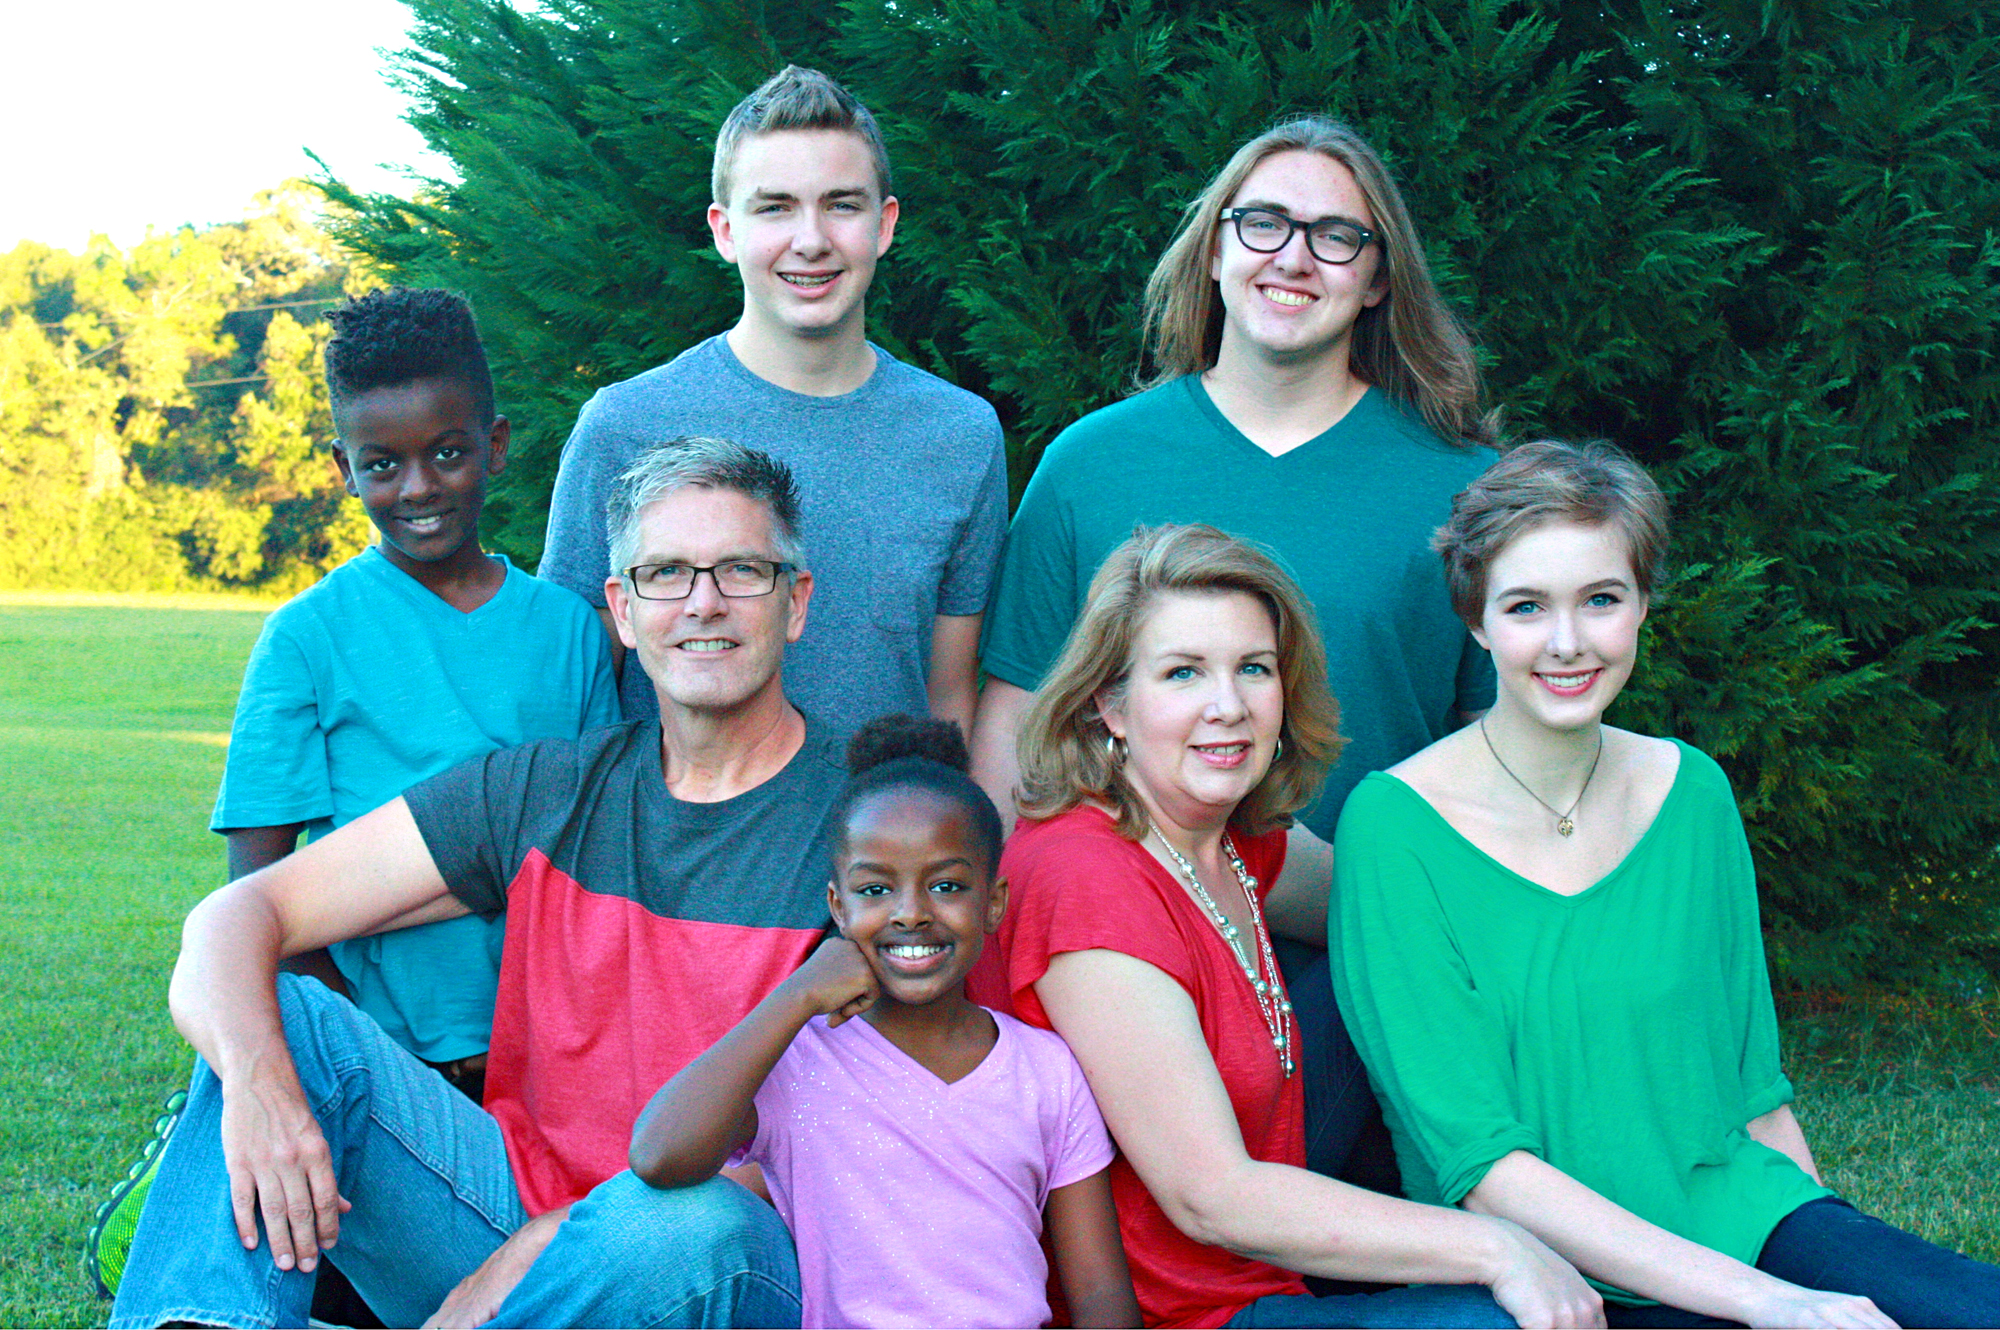 The Pierce Family is gathering support to serve as missionaries in Jinja, Uganda with Amazima Ministries. Find out how you can support them at leslieannjones.com.